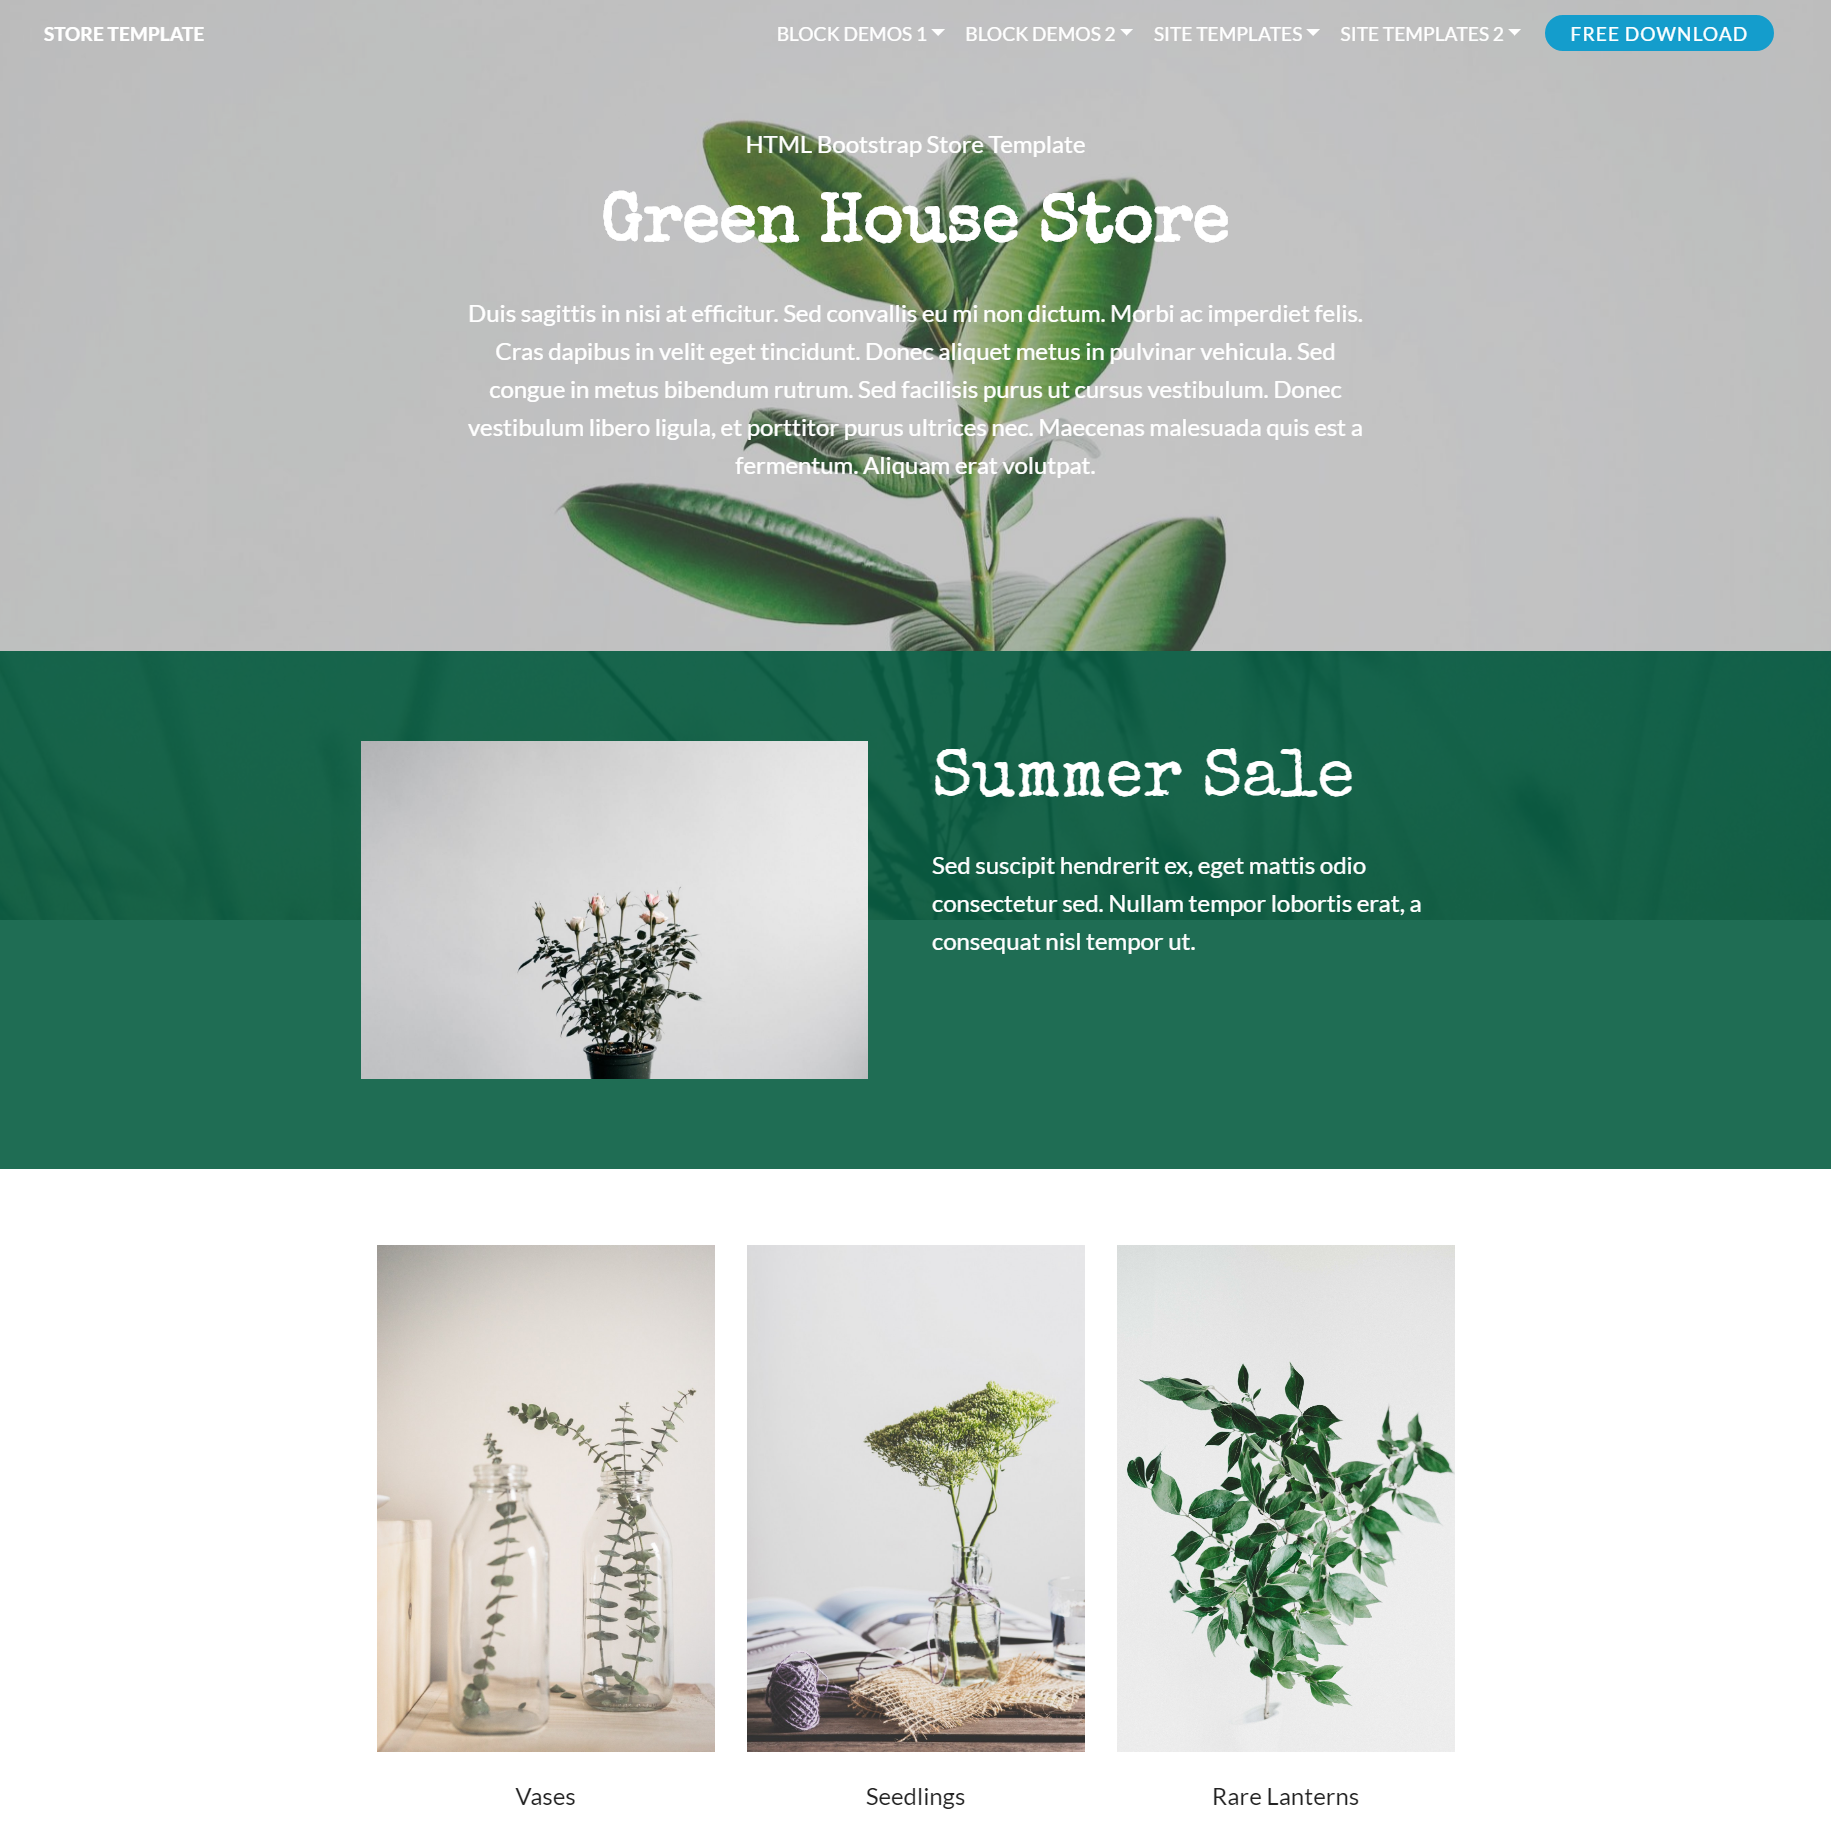 HTML5 Bootstrap Store Templates